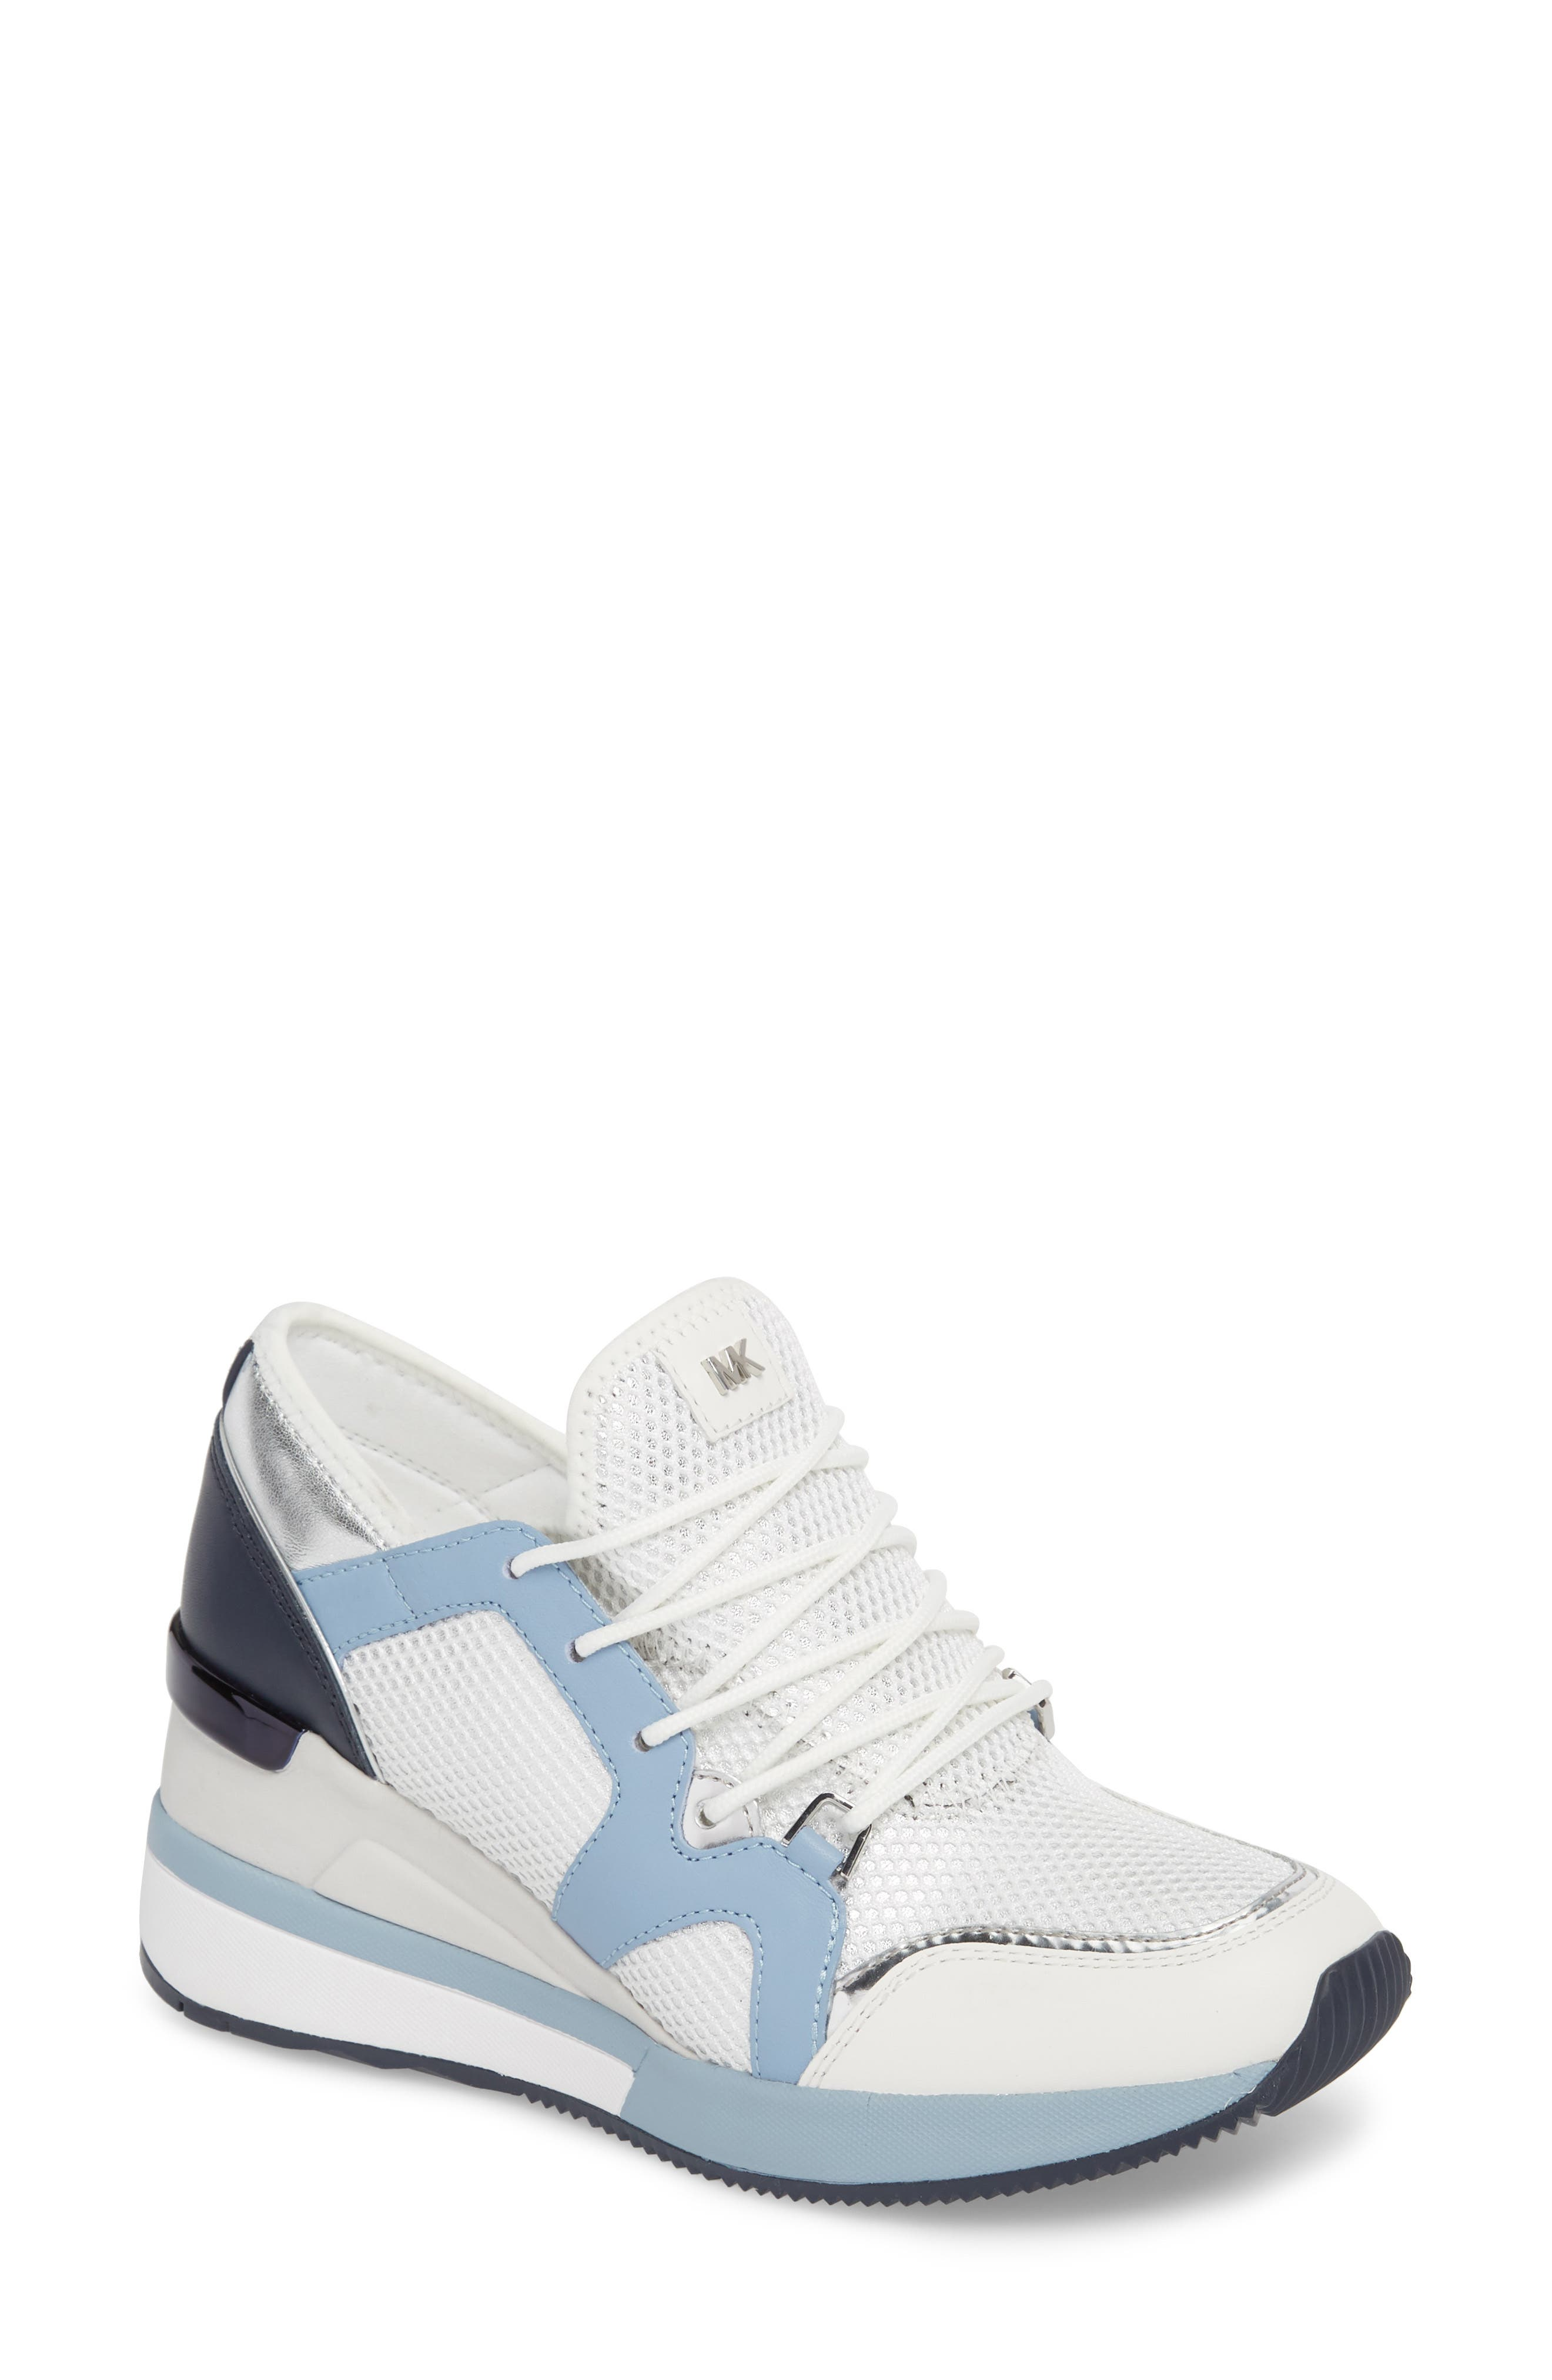 Scout Wedge Sneaker,                             Main thumbnail 1, color,                             Optic White/Blue